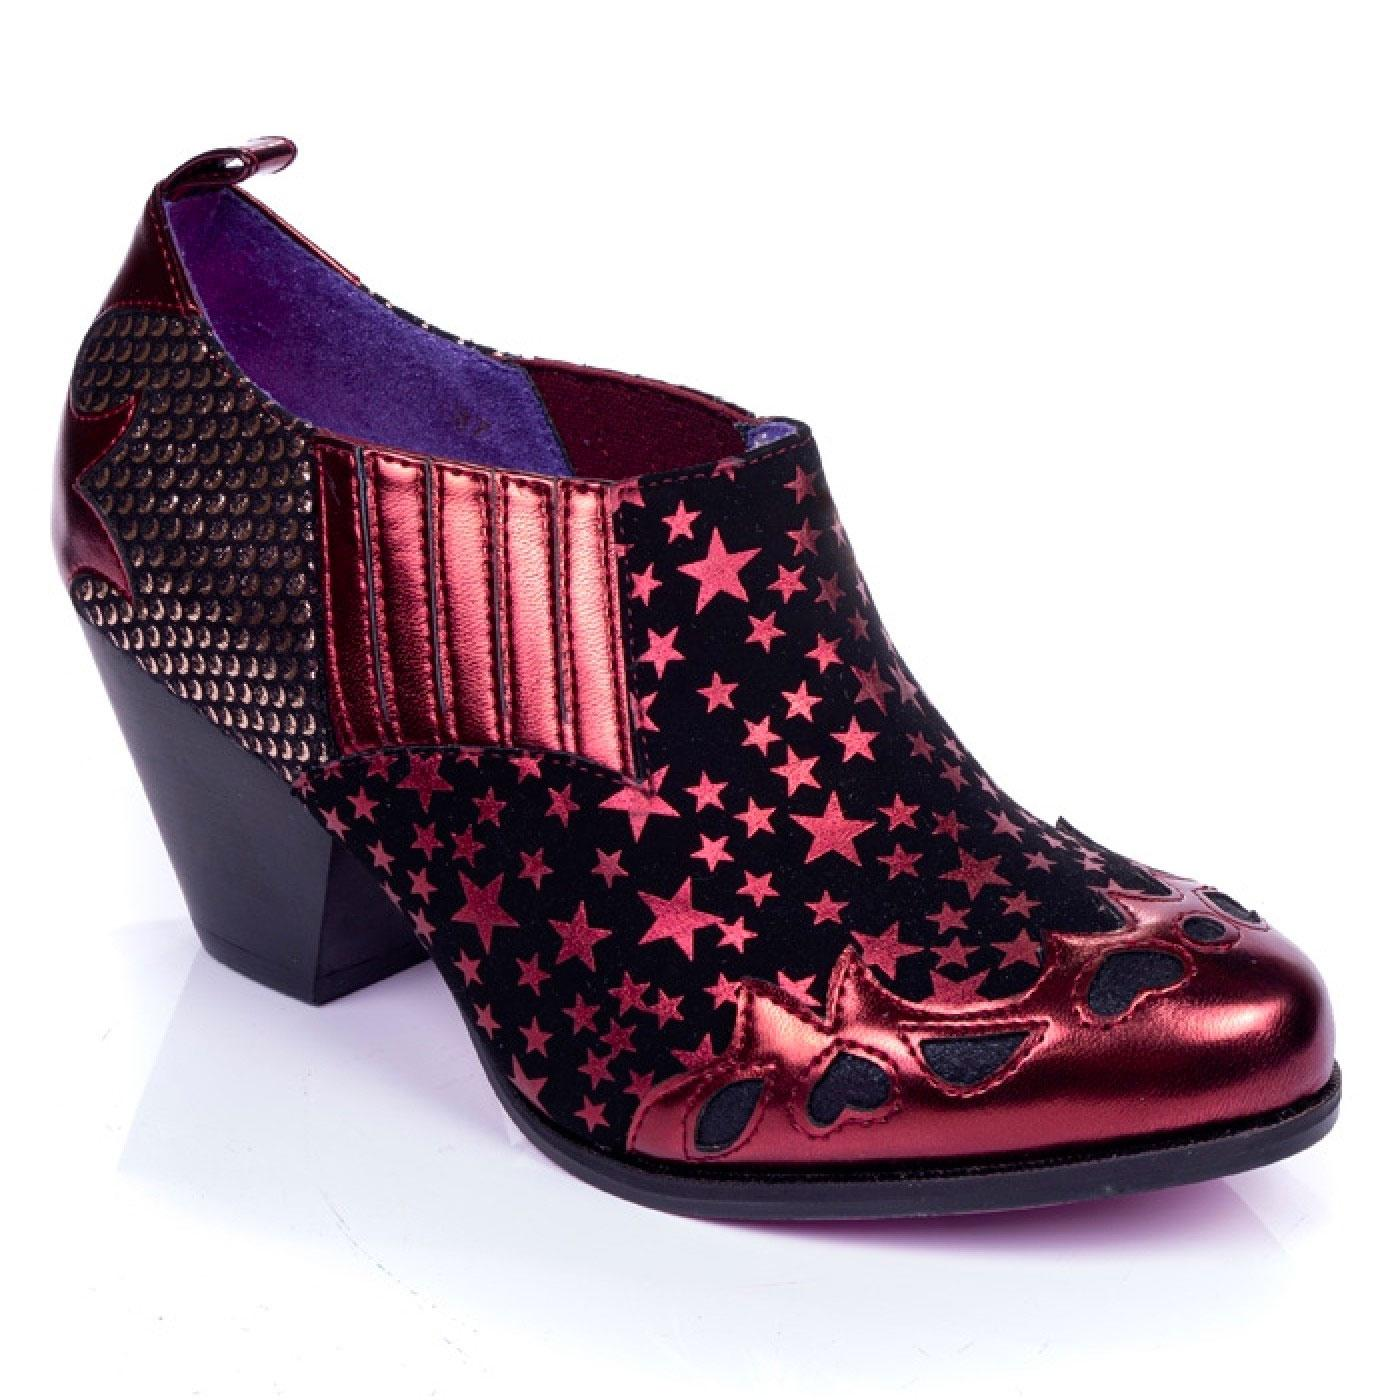 Barbarosa POETIC LICENCE Retro Star Heeled Boots B